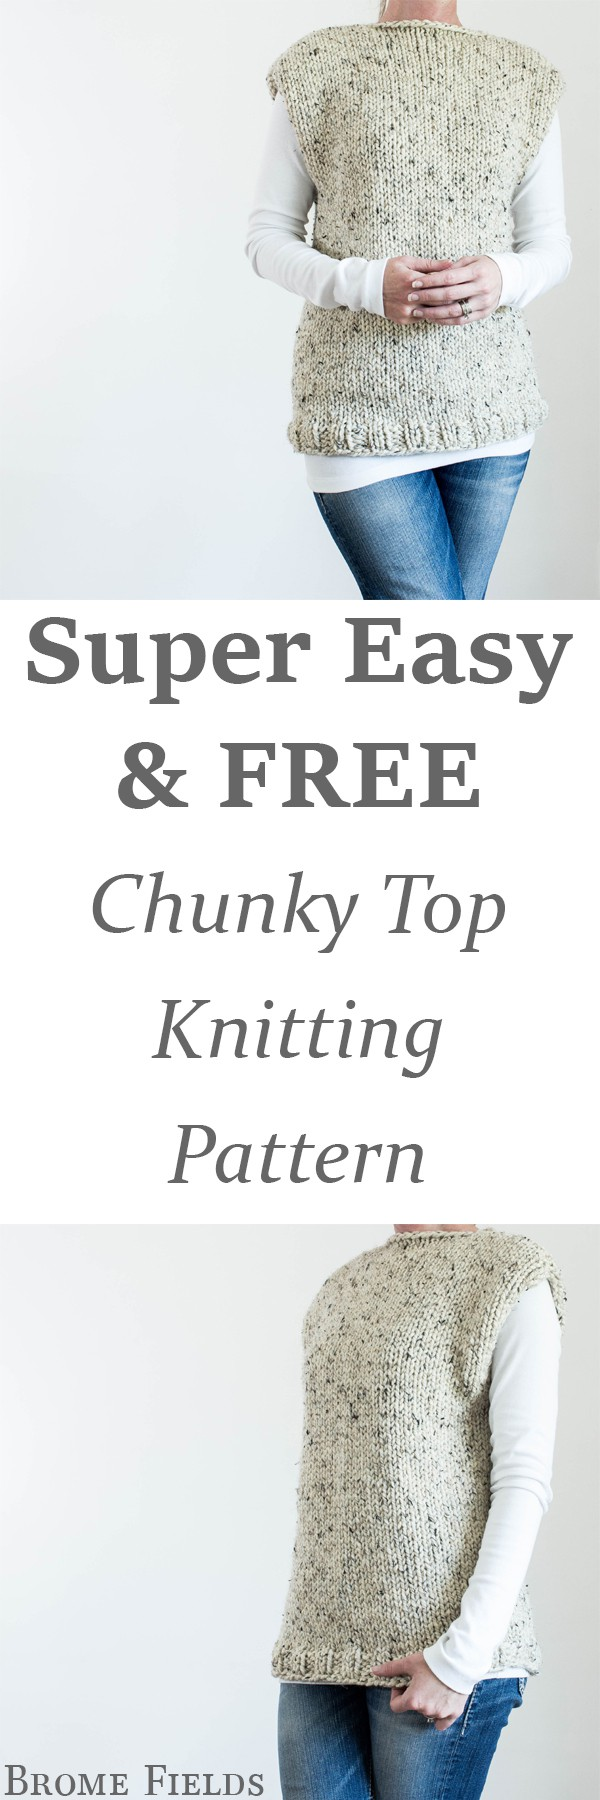 FREE Thick & Quick Top Knitting Pattern